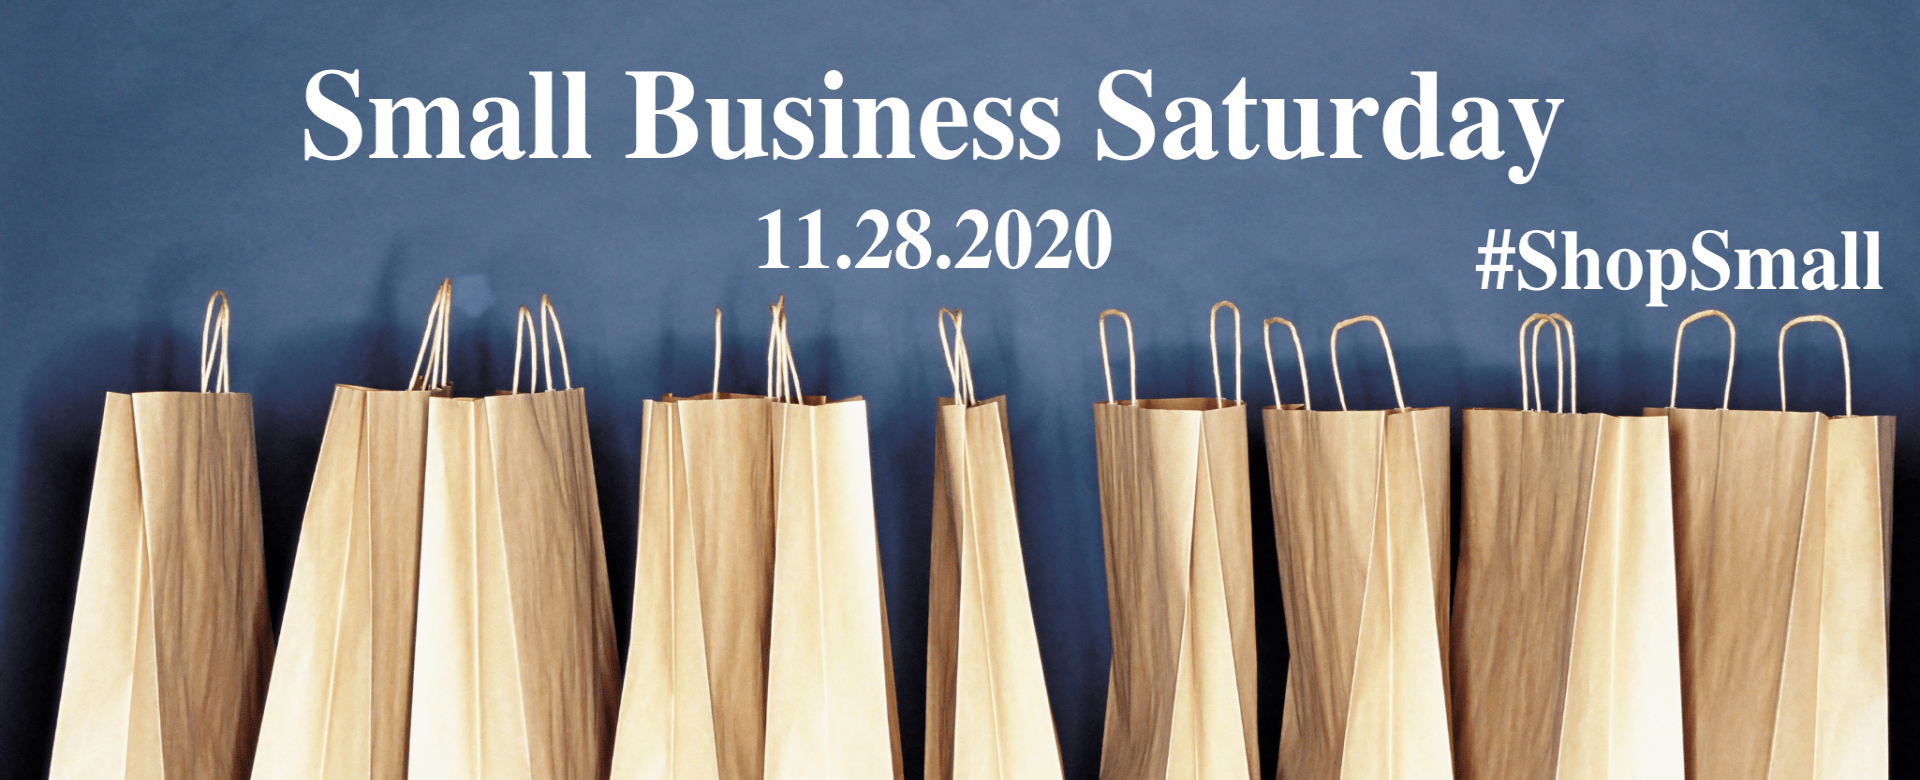 Small-Business-Saturday-(3)-w1920.png